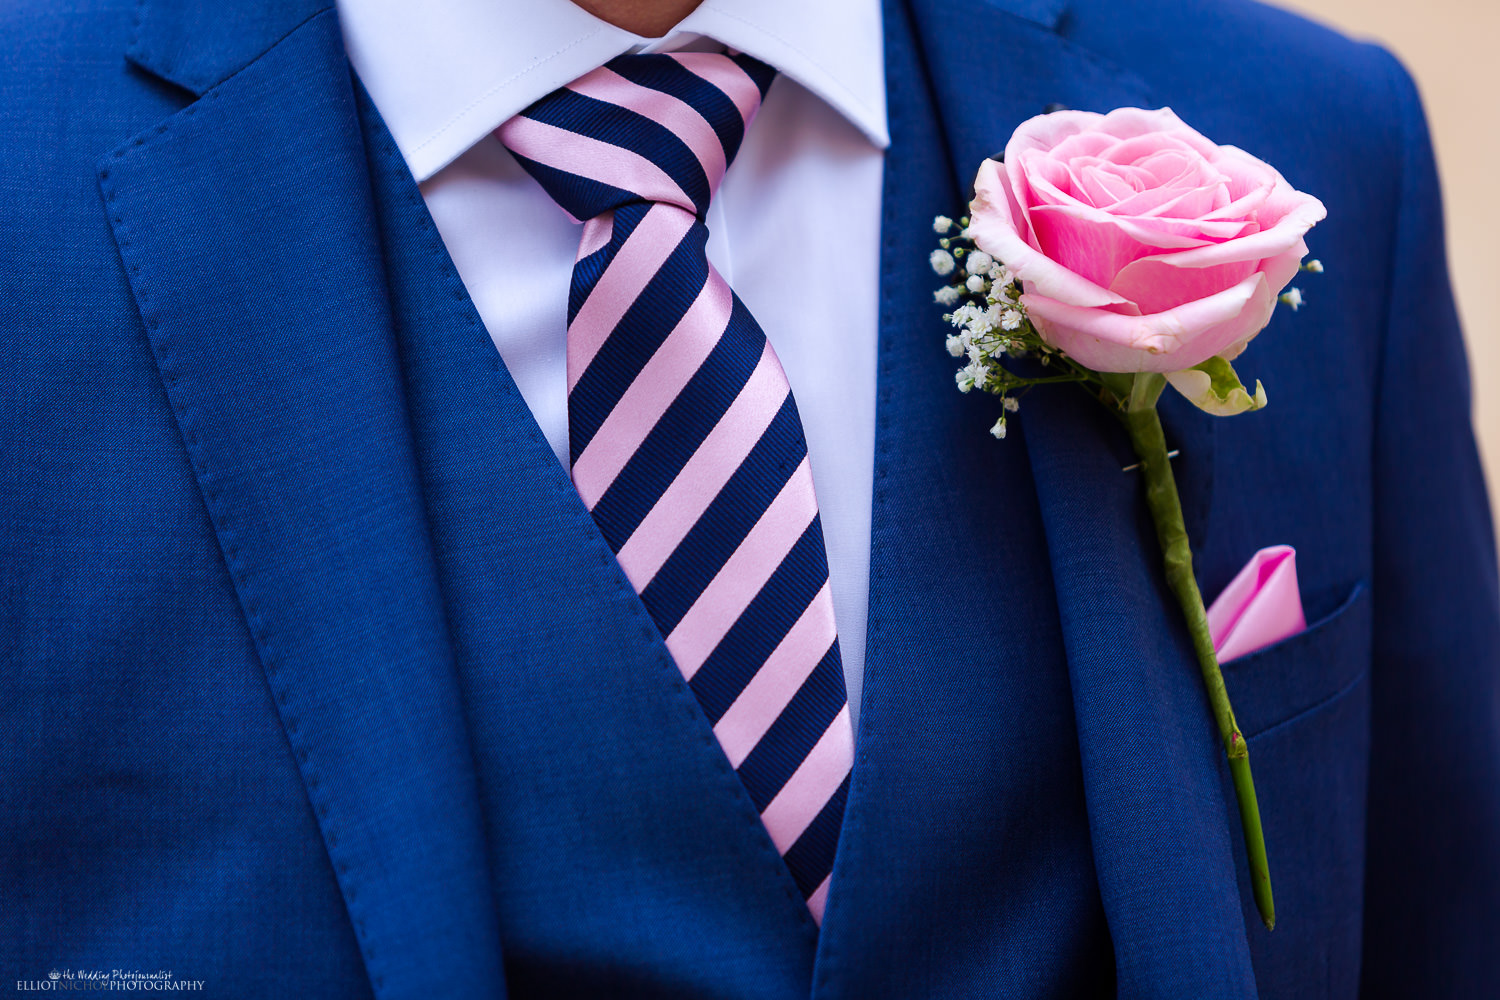 Groom in his wedding suit - blue and pink